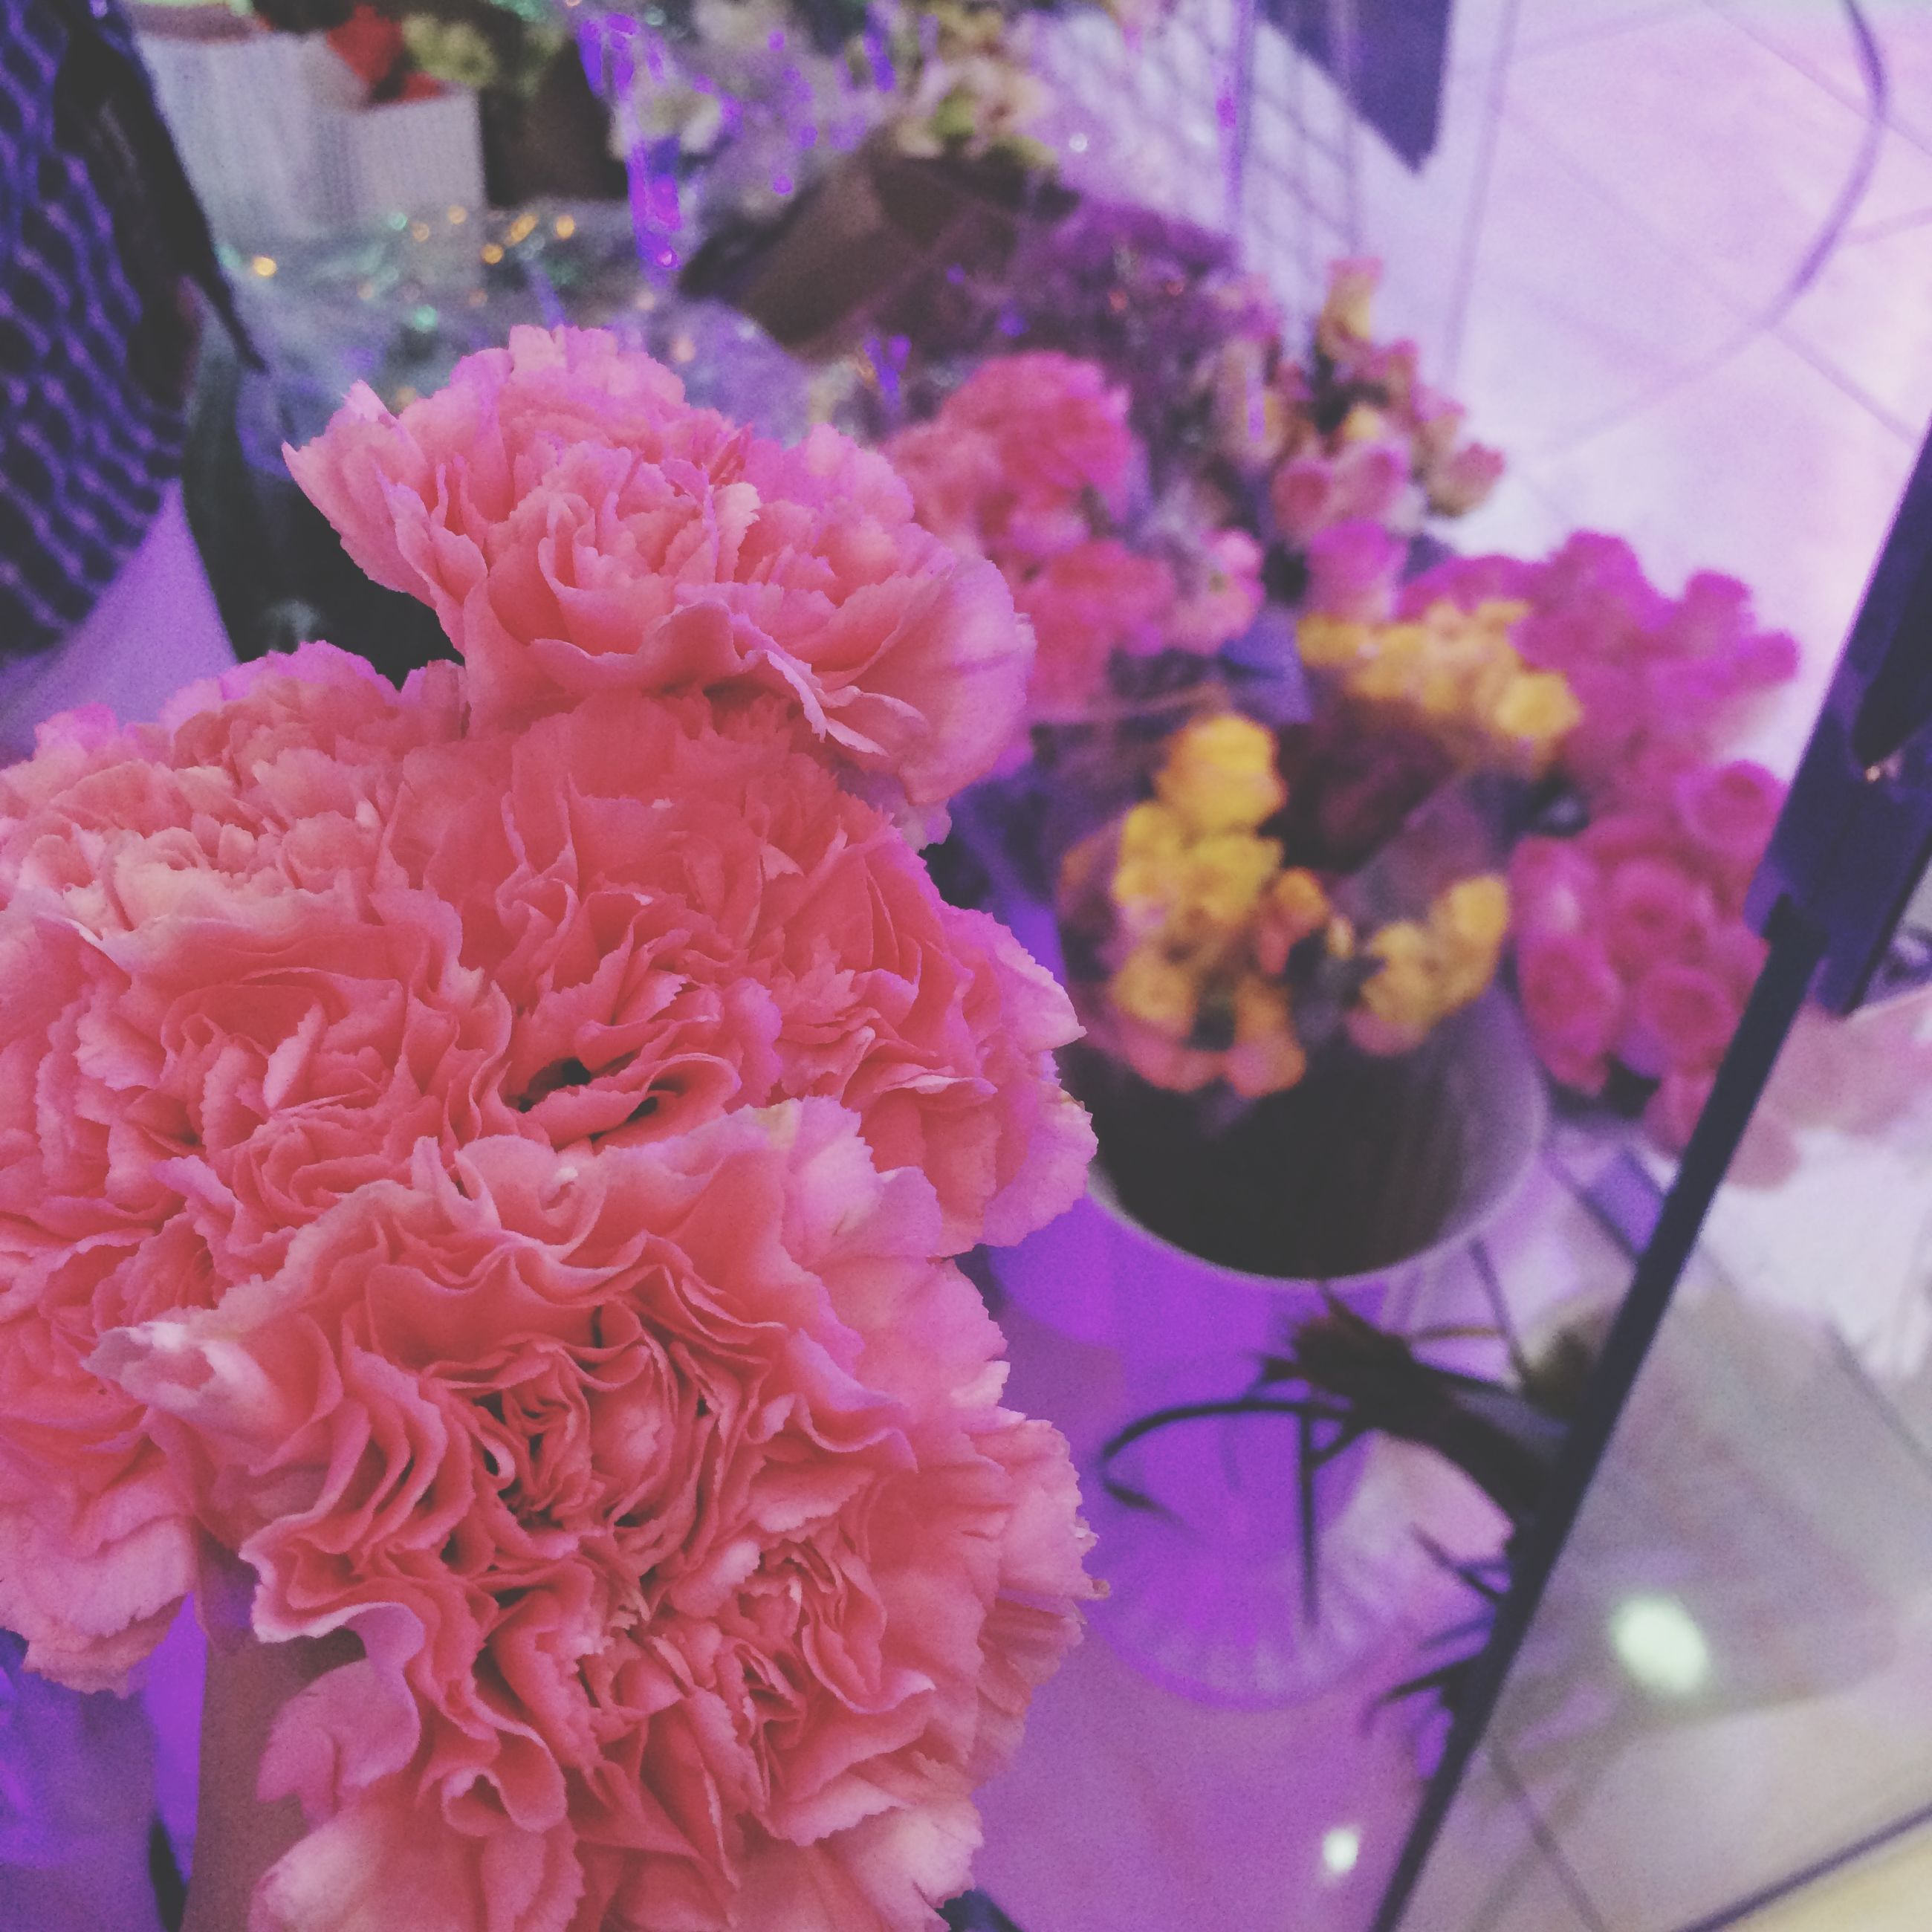 flower, freshness, indoors, petal, fragility, flower head, pink color, close-up, high angle view, bunch of flowers, beauty in nature, decoration, multi colored, bouquet, variation, growth, no people, nature, vase, plant